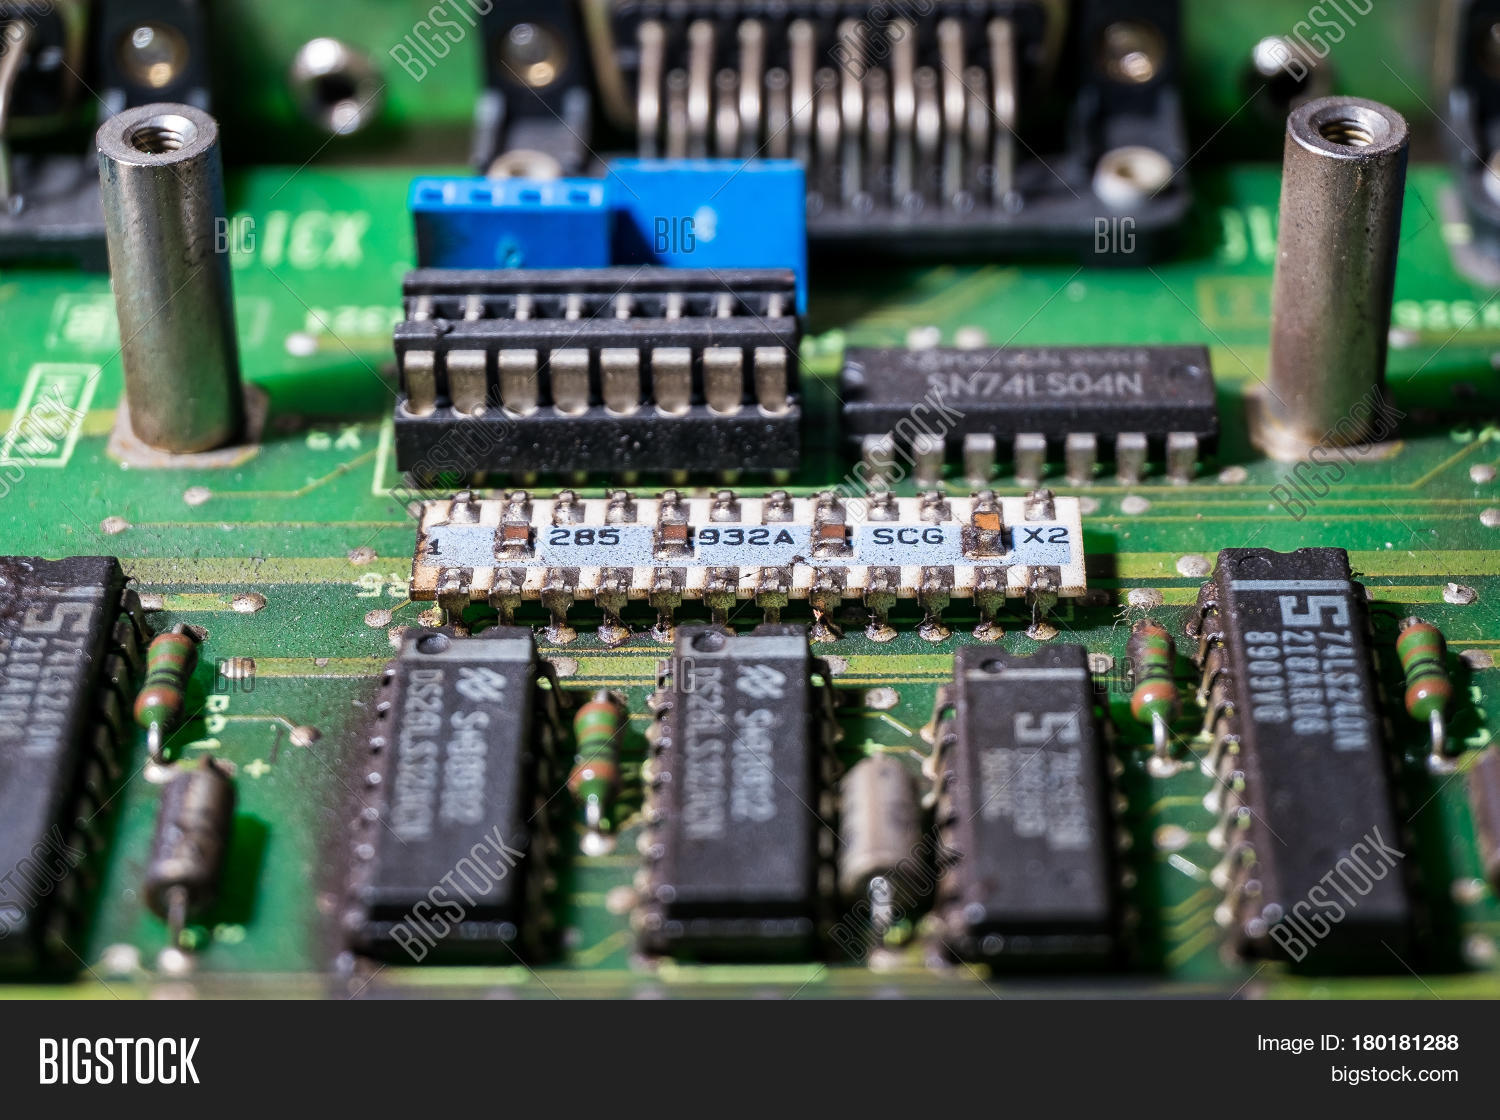 Different Microchips Image Photo Free Trial Bigstock Picture Of Old Circuit Board And Transistors On An